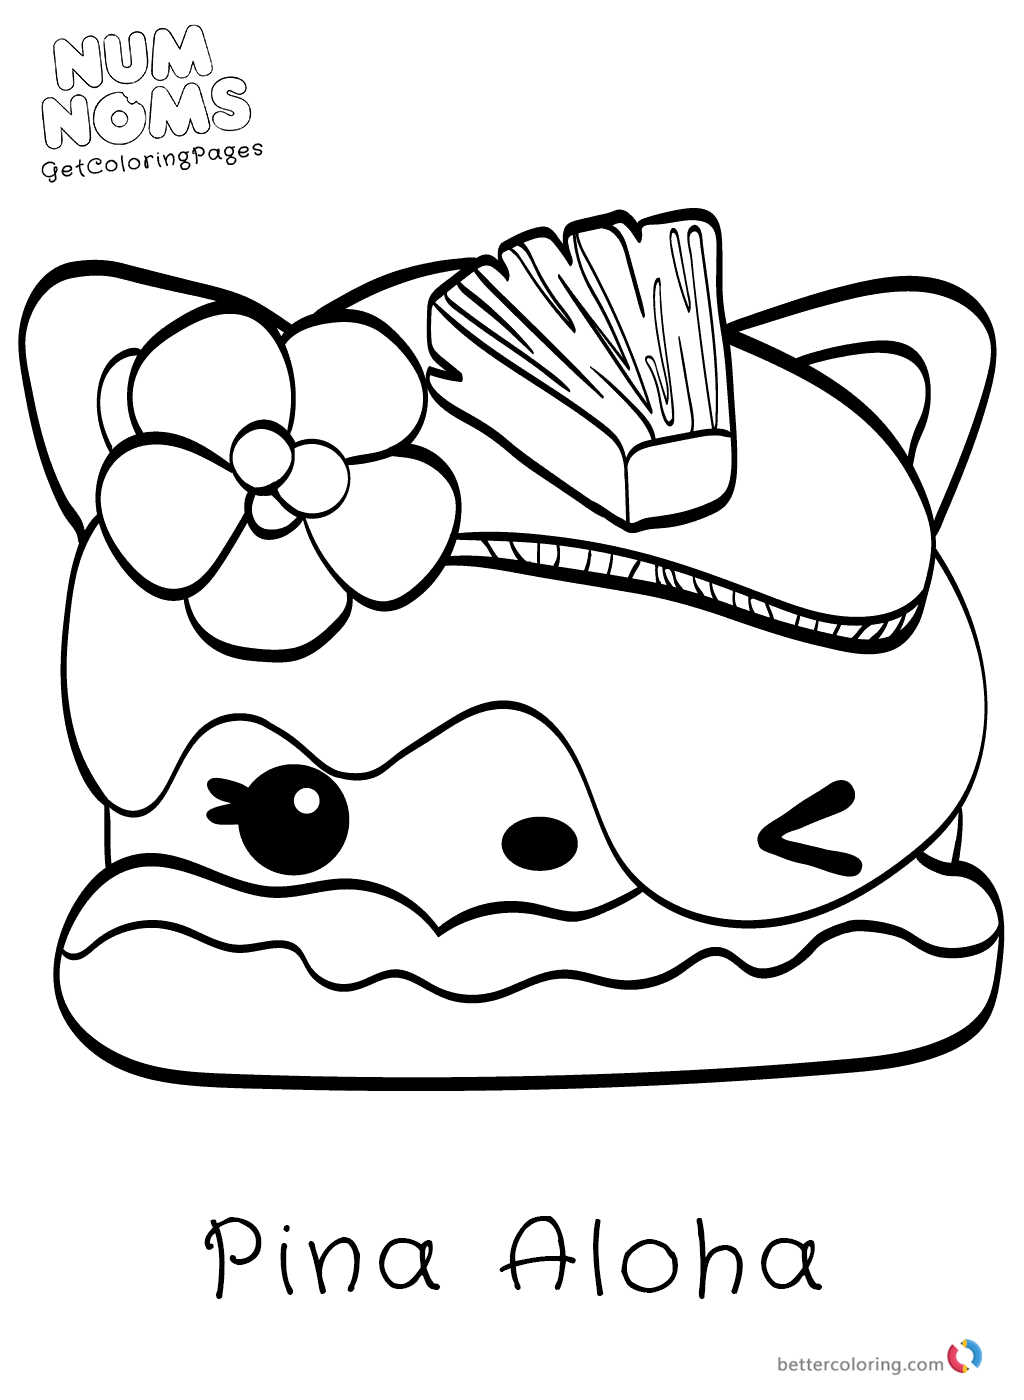 Num Noms Coloring Pictures - Free Printable Coloring Pages